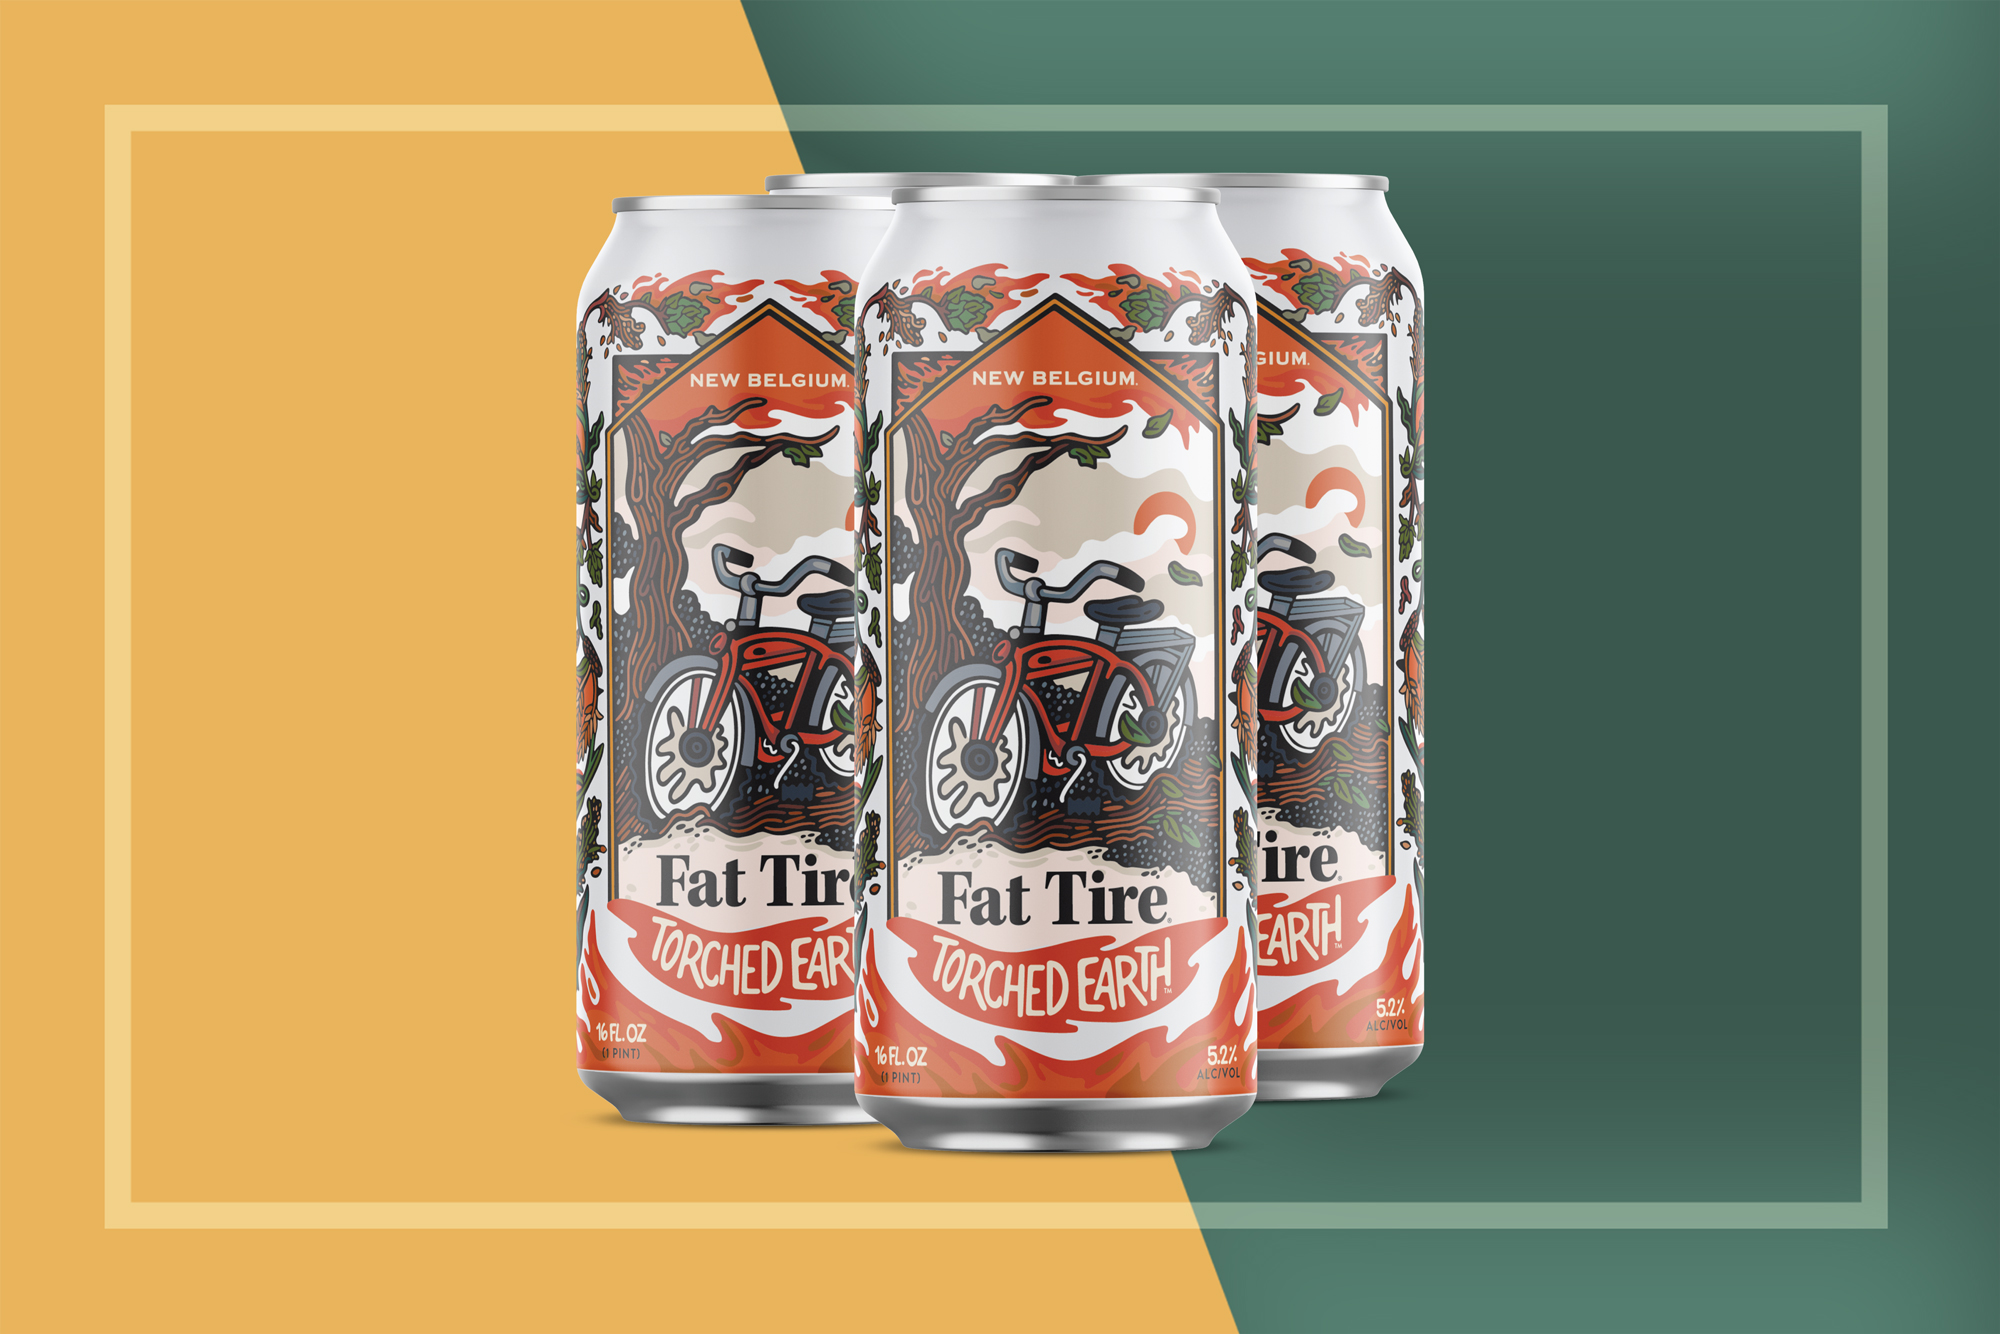 New Belgium Flat Tired Torched Earth Cans